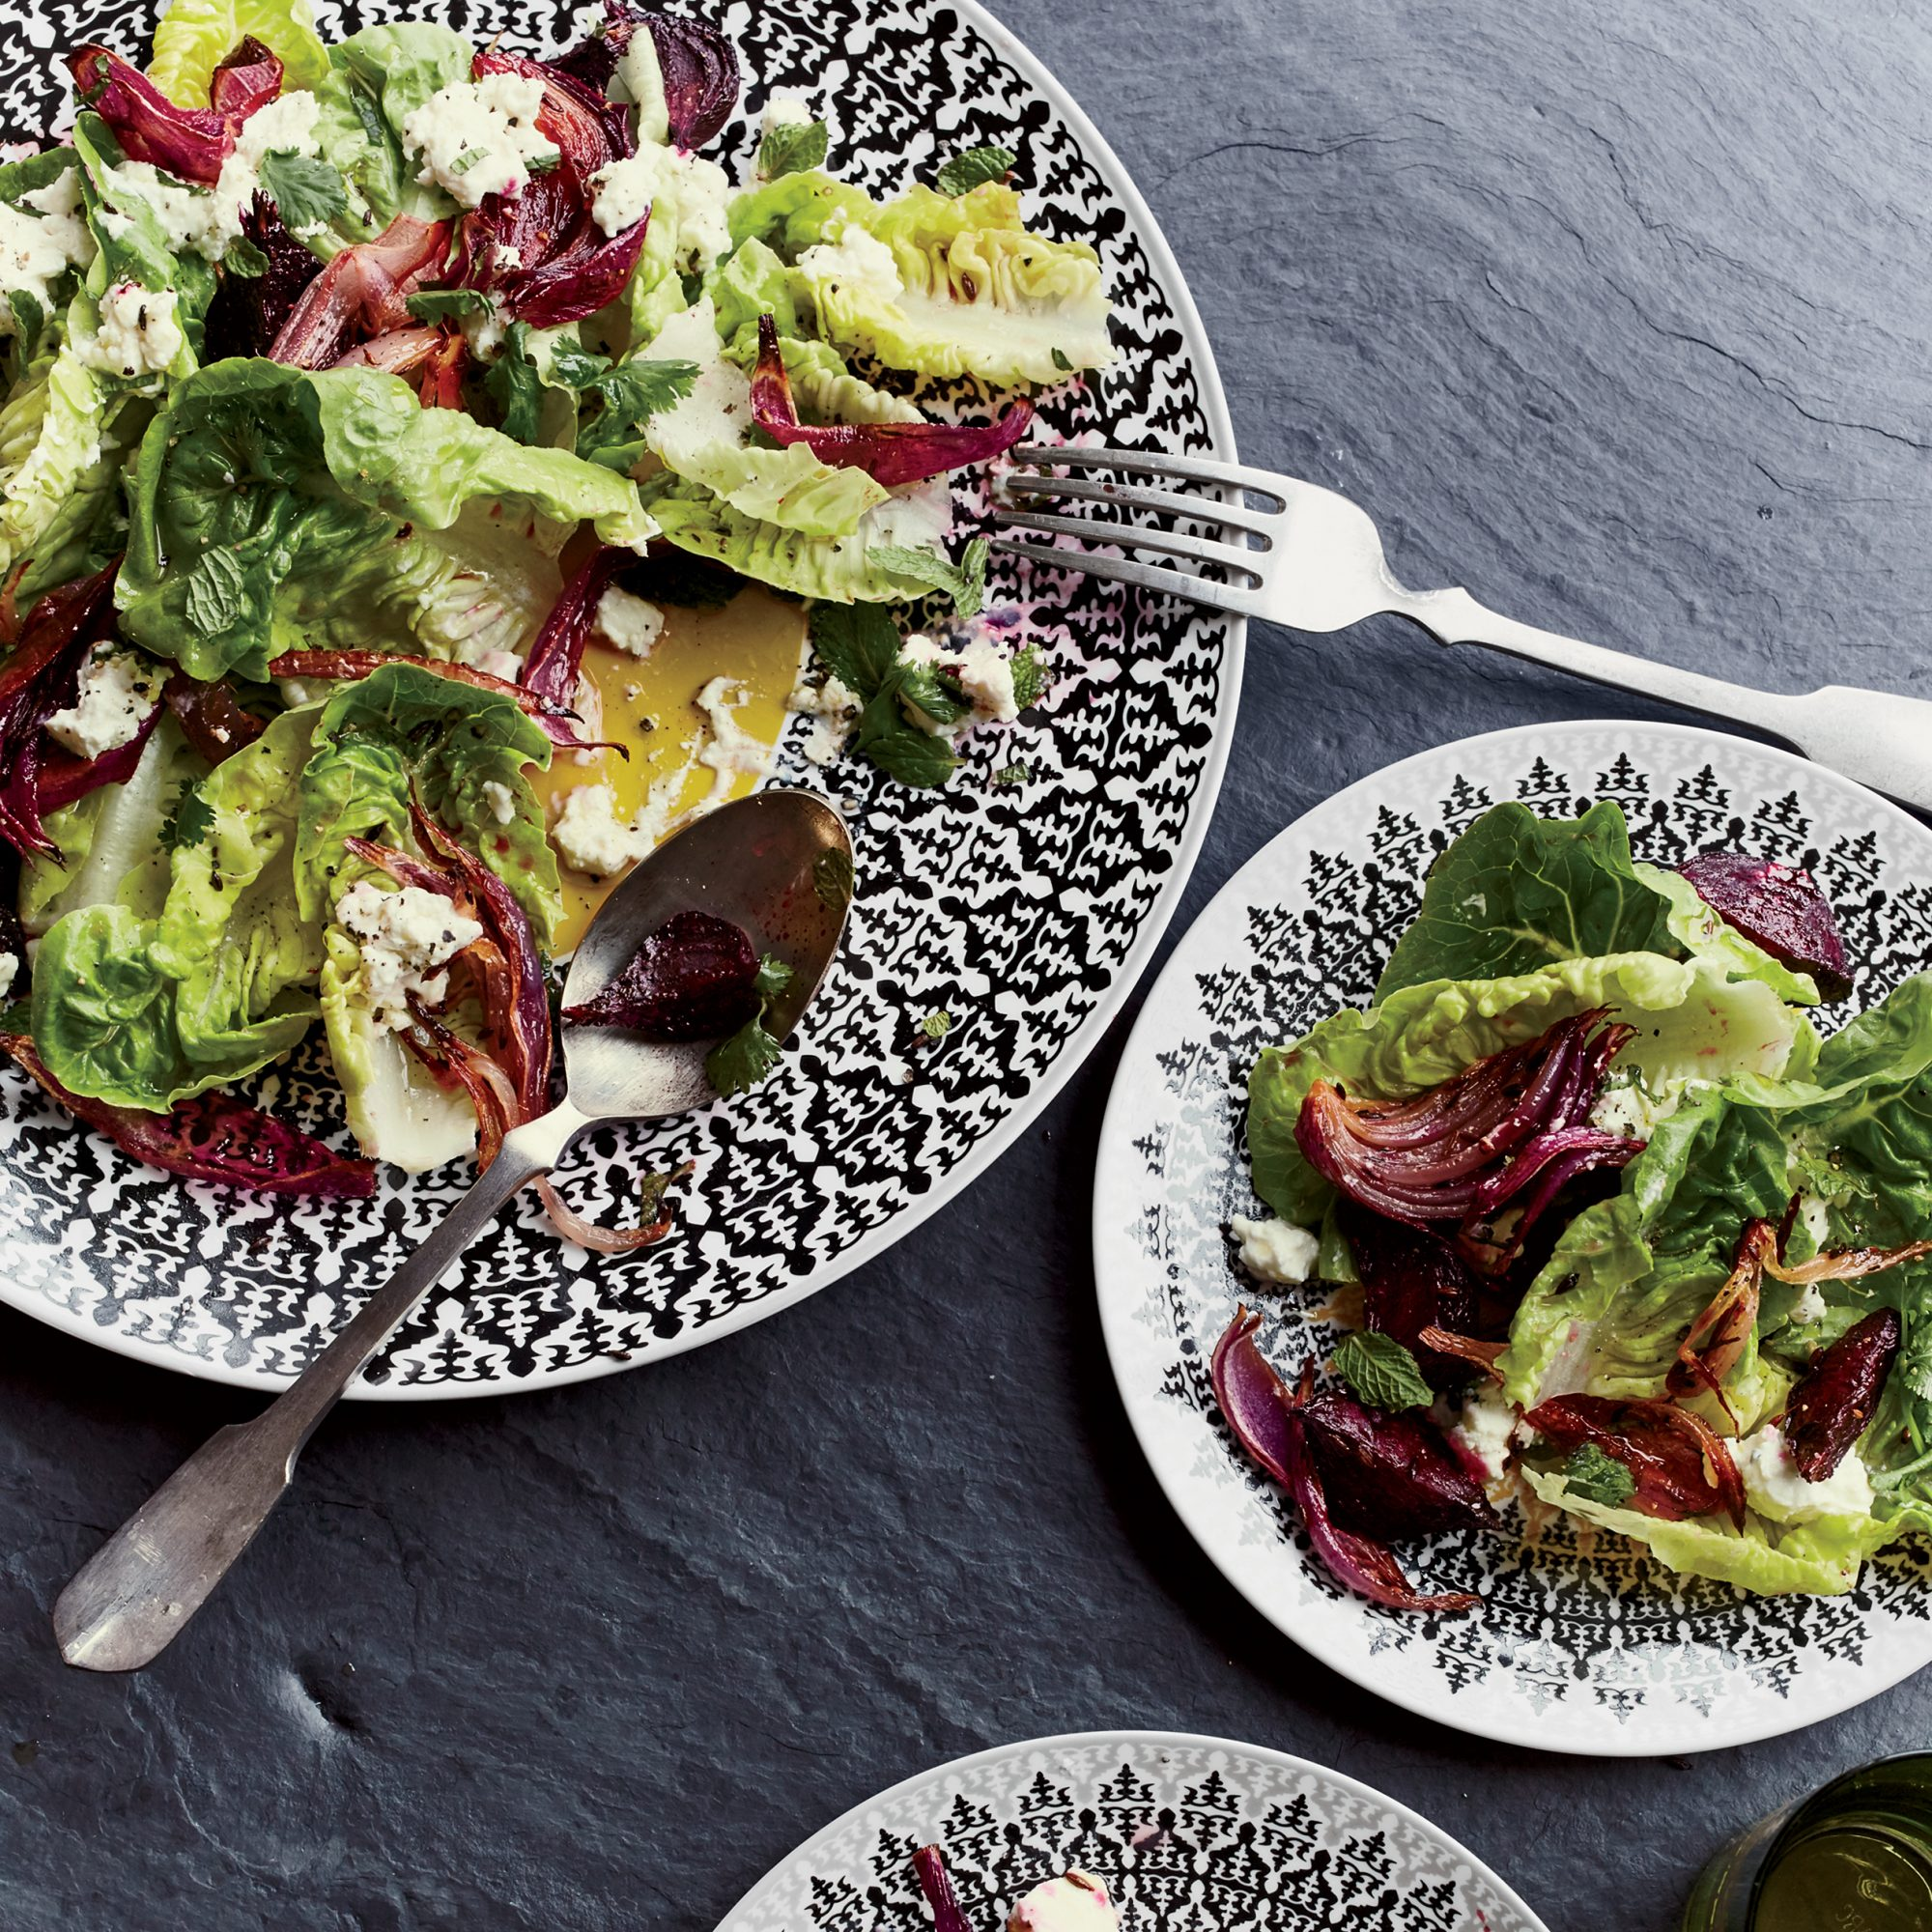 Little Gem Lettuce with Roasted Beets and Feta Dressing